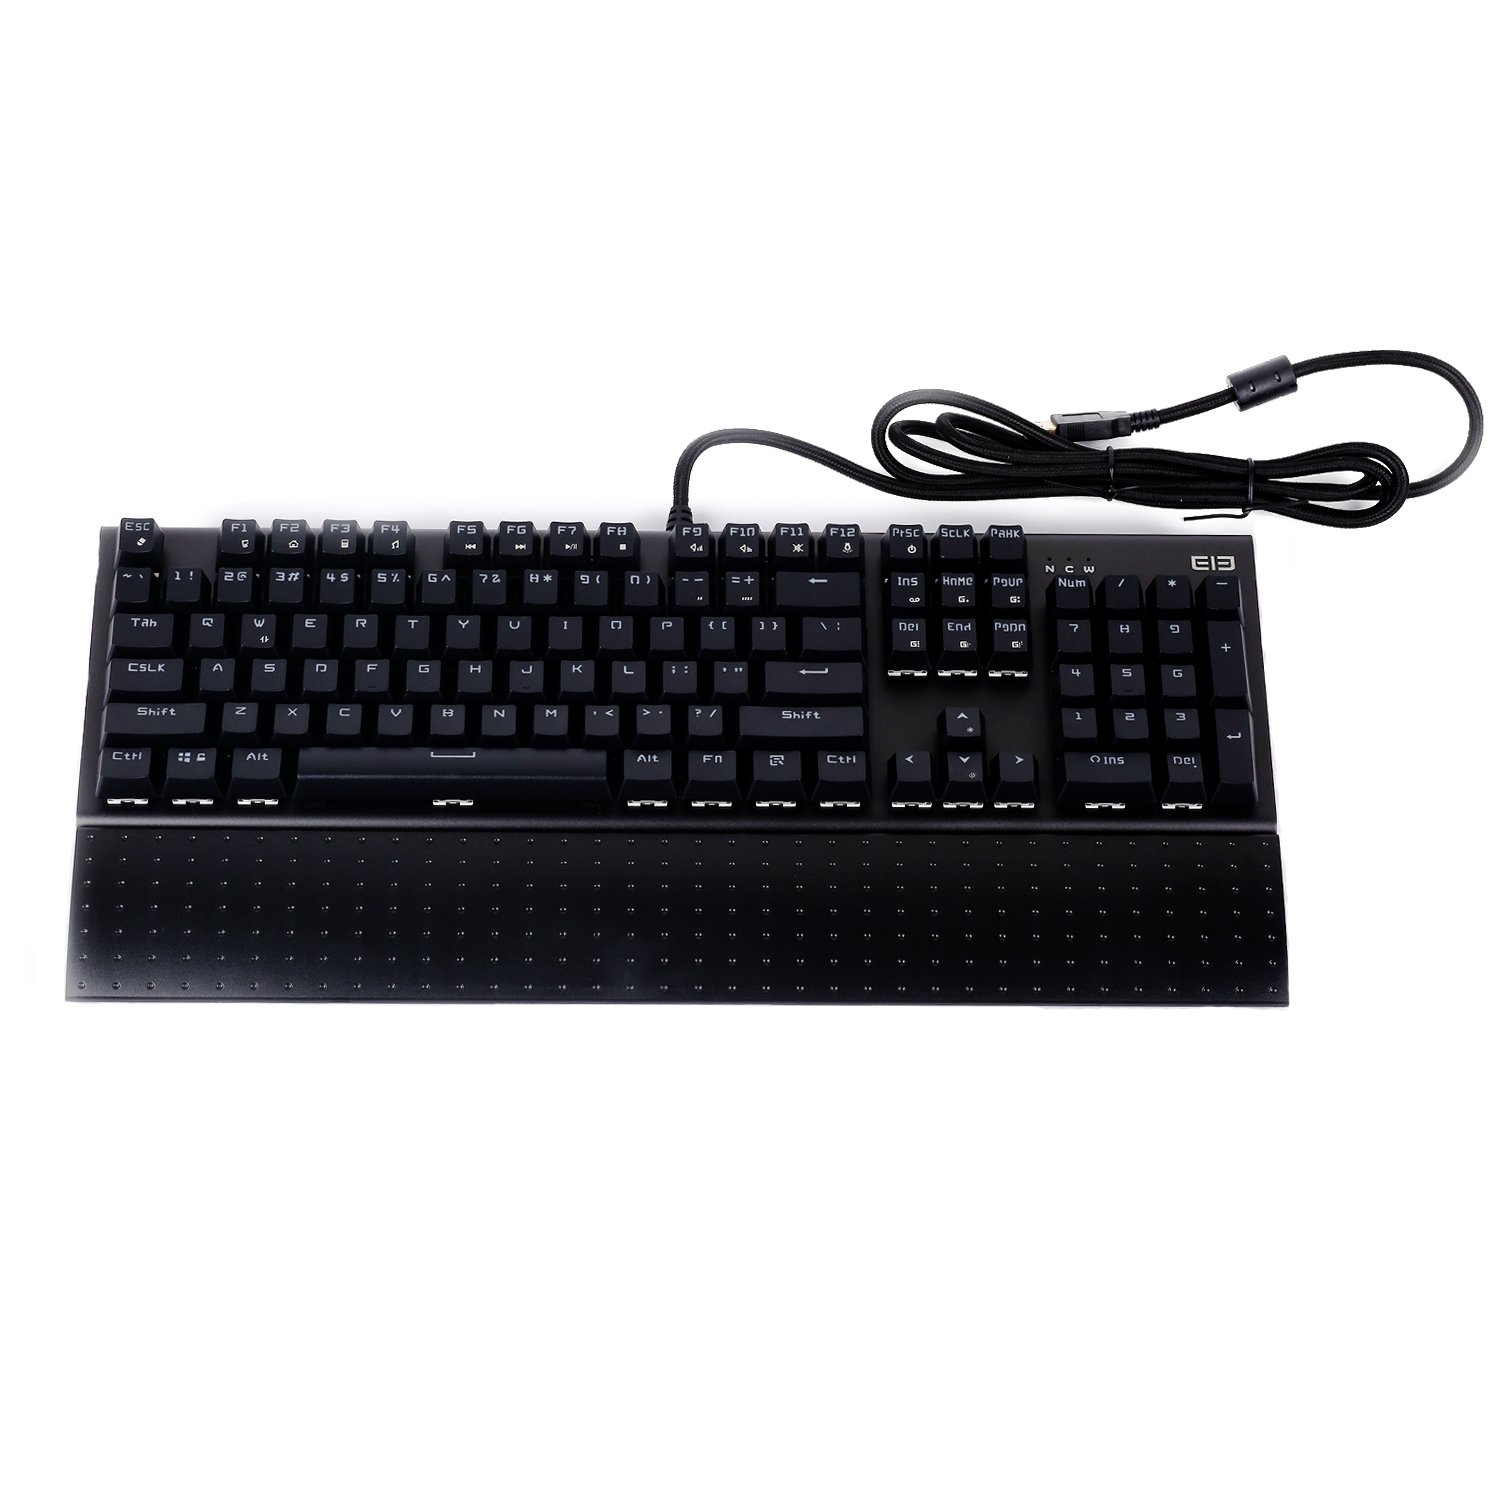 Amazon mechanical keyboard - Amazon Com Mechanical Keyboard Ele Eleenter Game1 Anti Ghosting Keyboards 104 Keys Metal Gaming Keyboards Computers Accessories